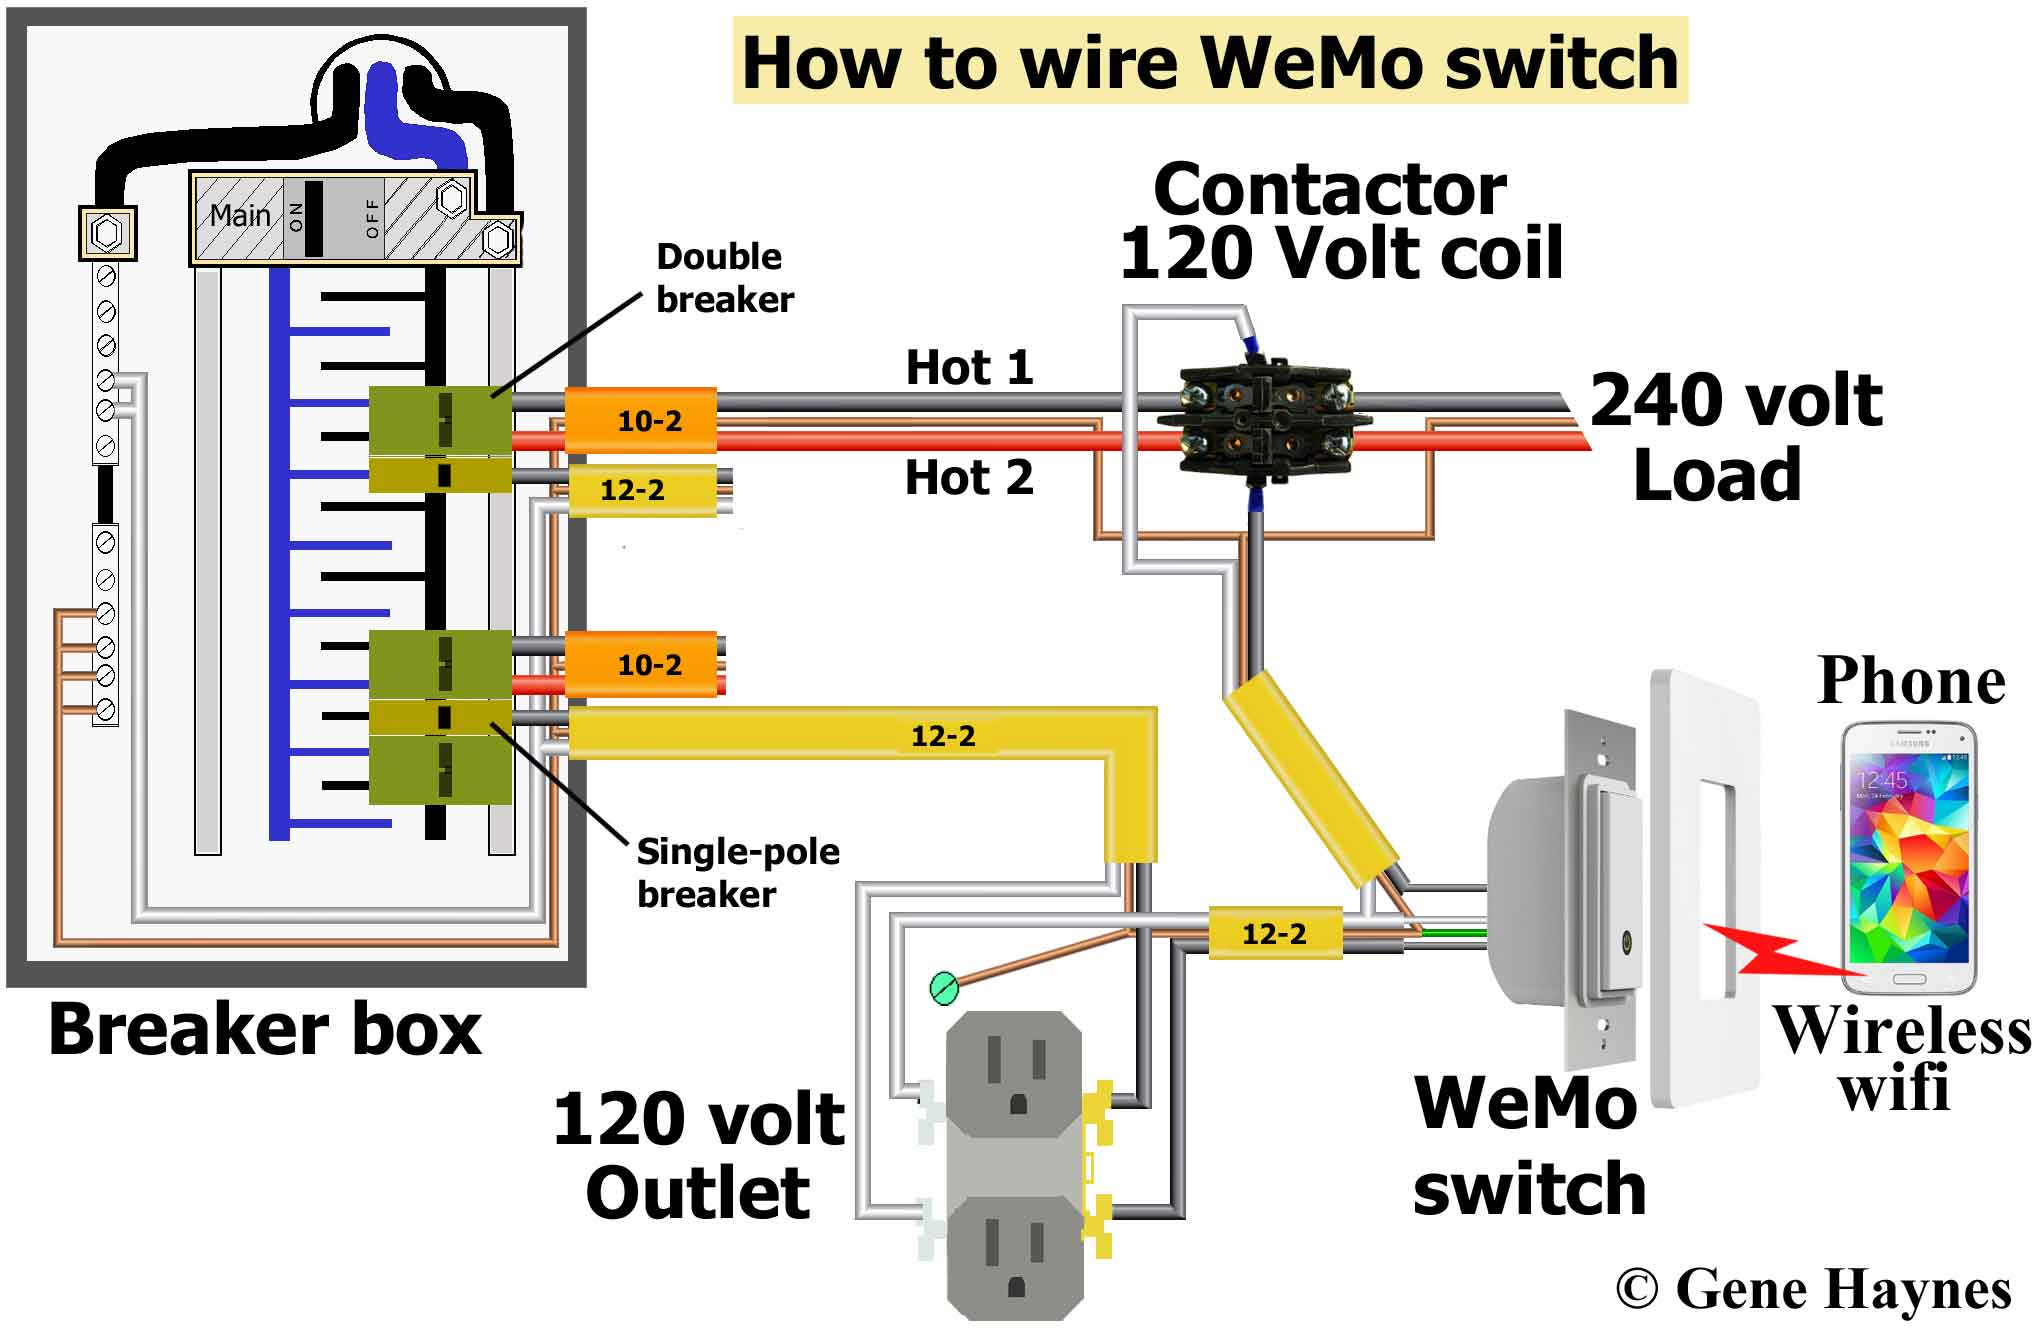 WeMo switch wiring illustration 3 control 240 volt with wemo volt free contact wiring diagram at mifinder.co